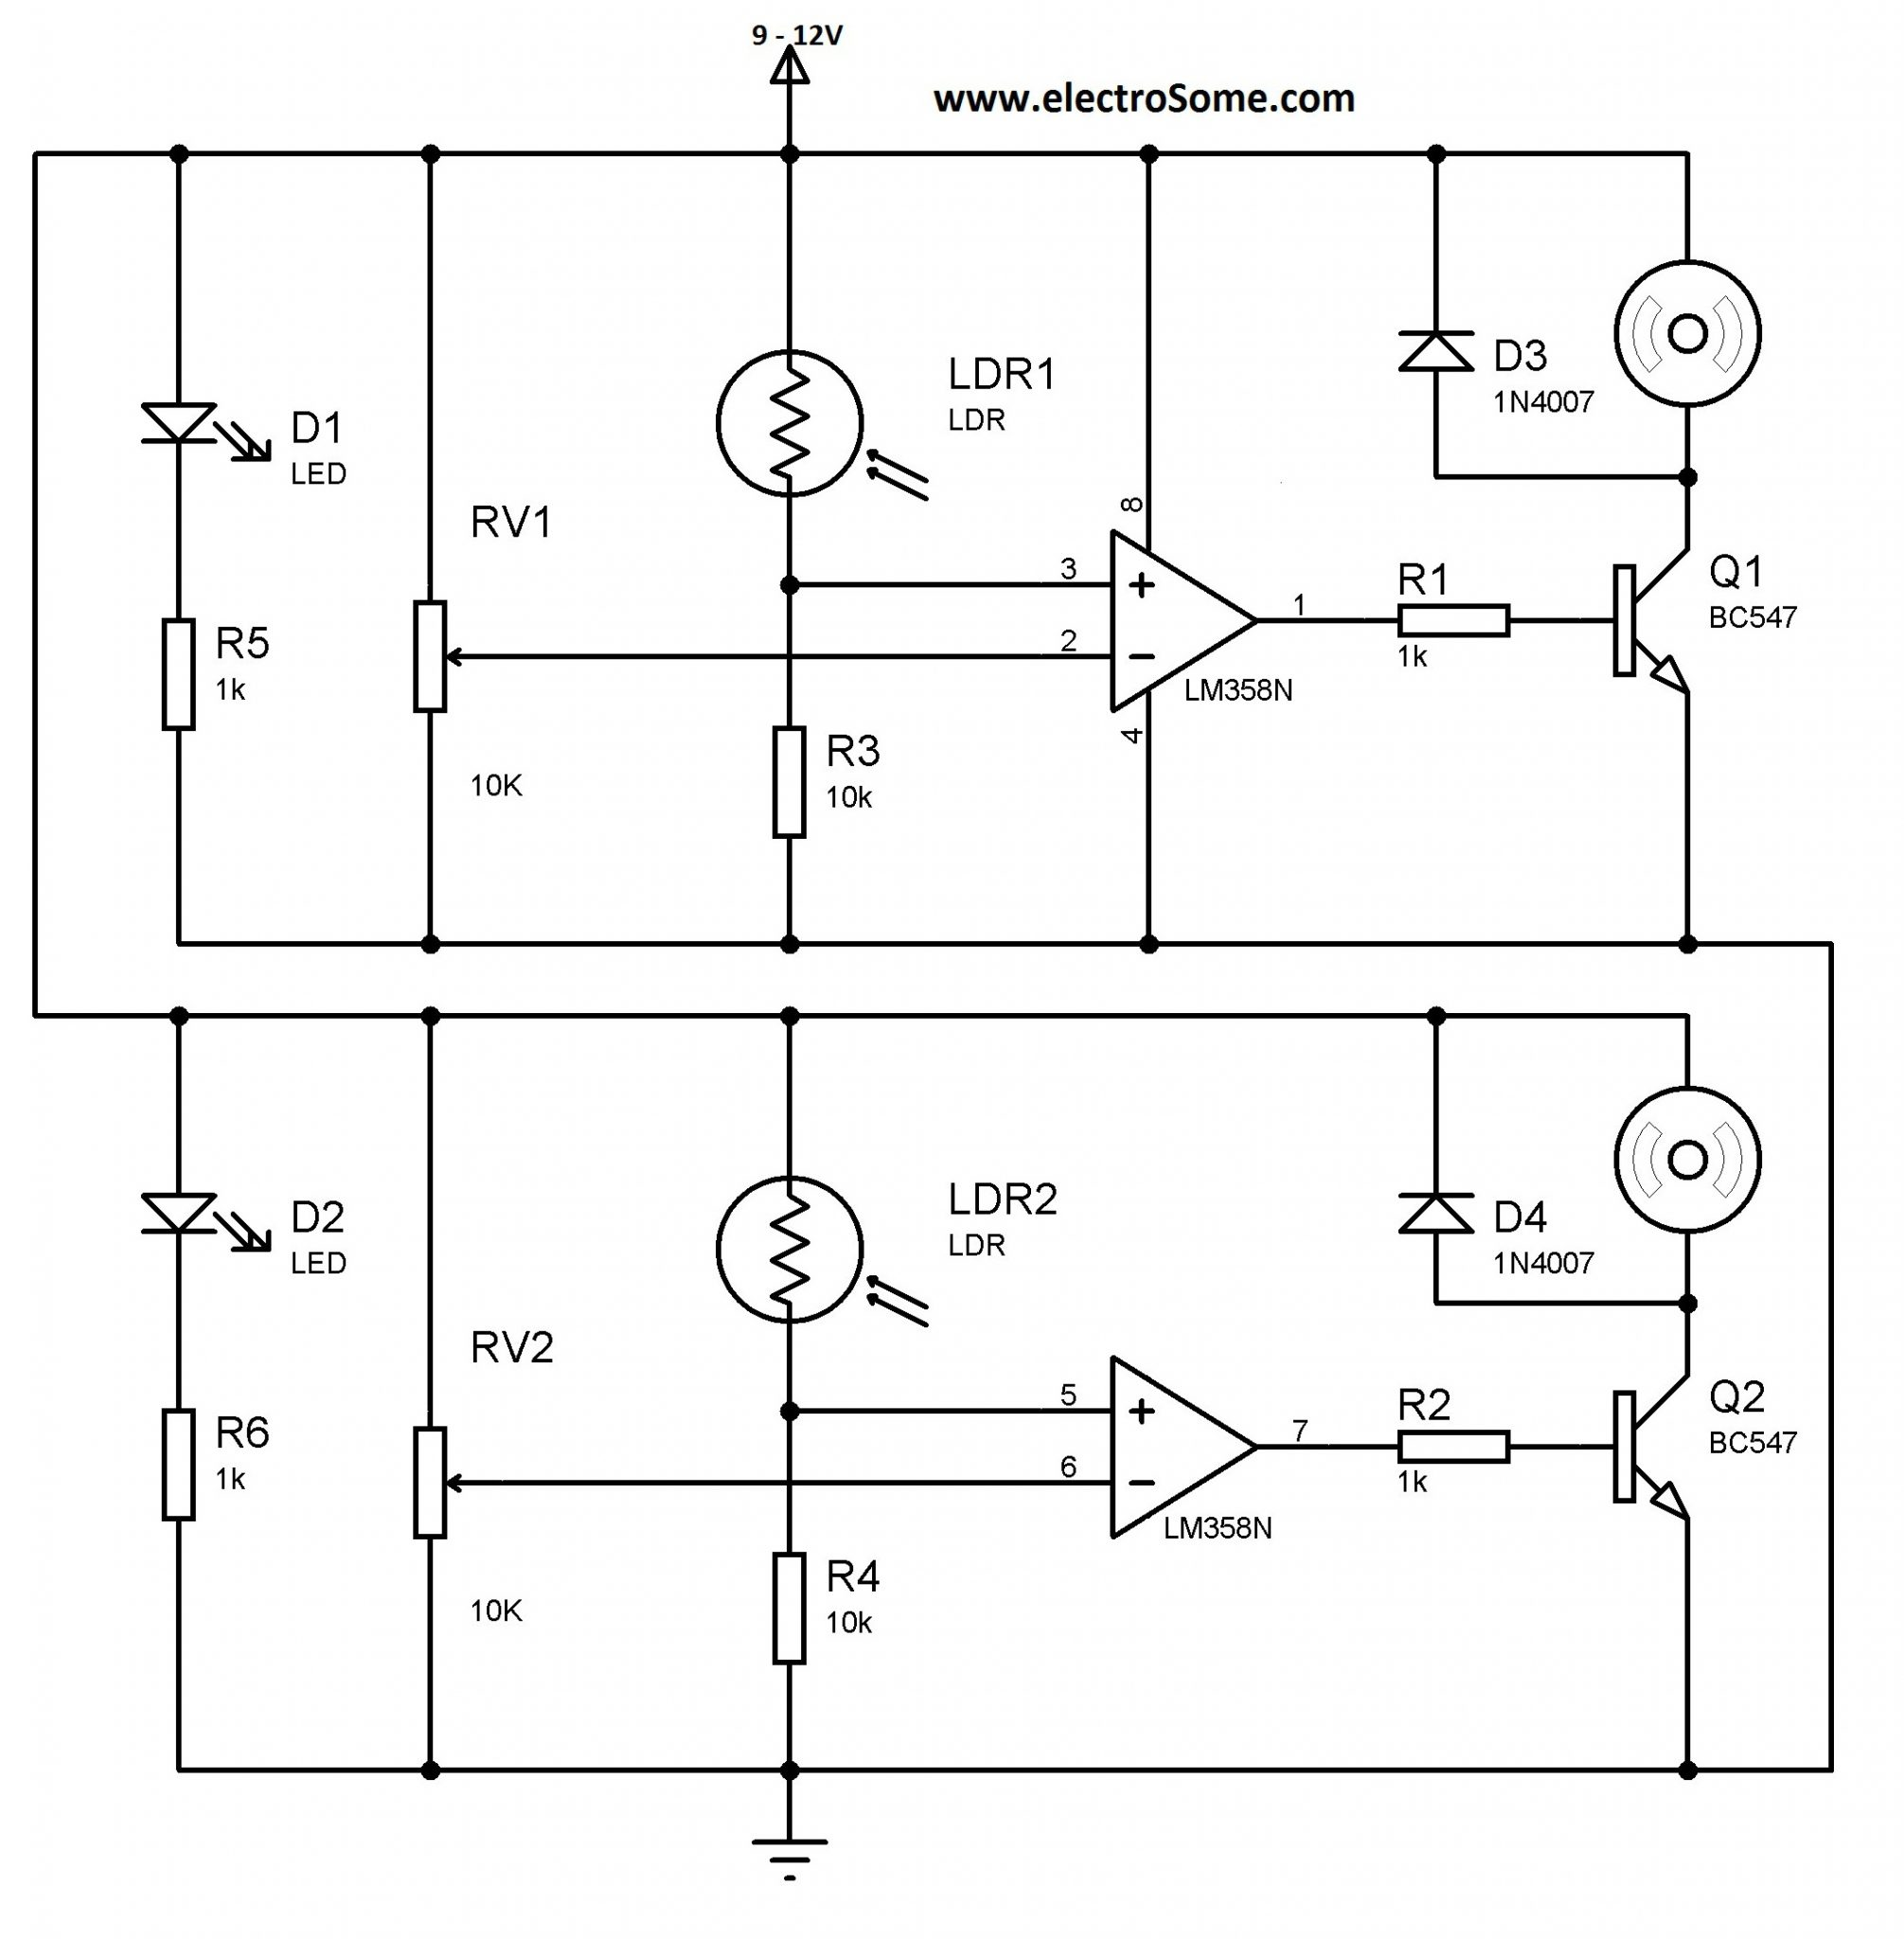 Lm324 Ic Pin Diagram Wiring Diagrams Line Follower Robot Without Using Microcontroller Circuit Lm319n